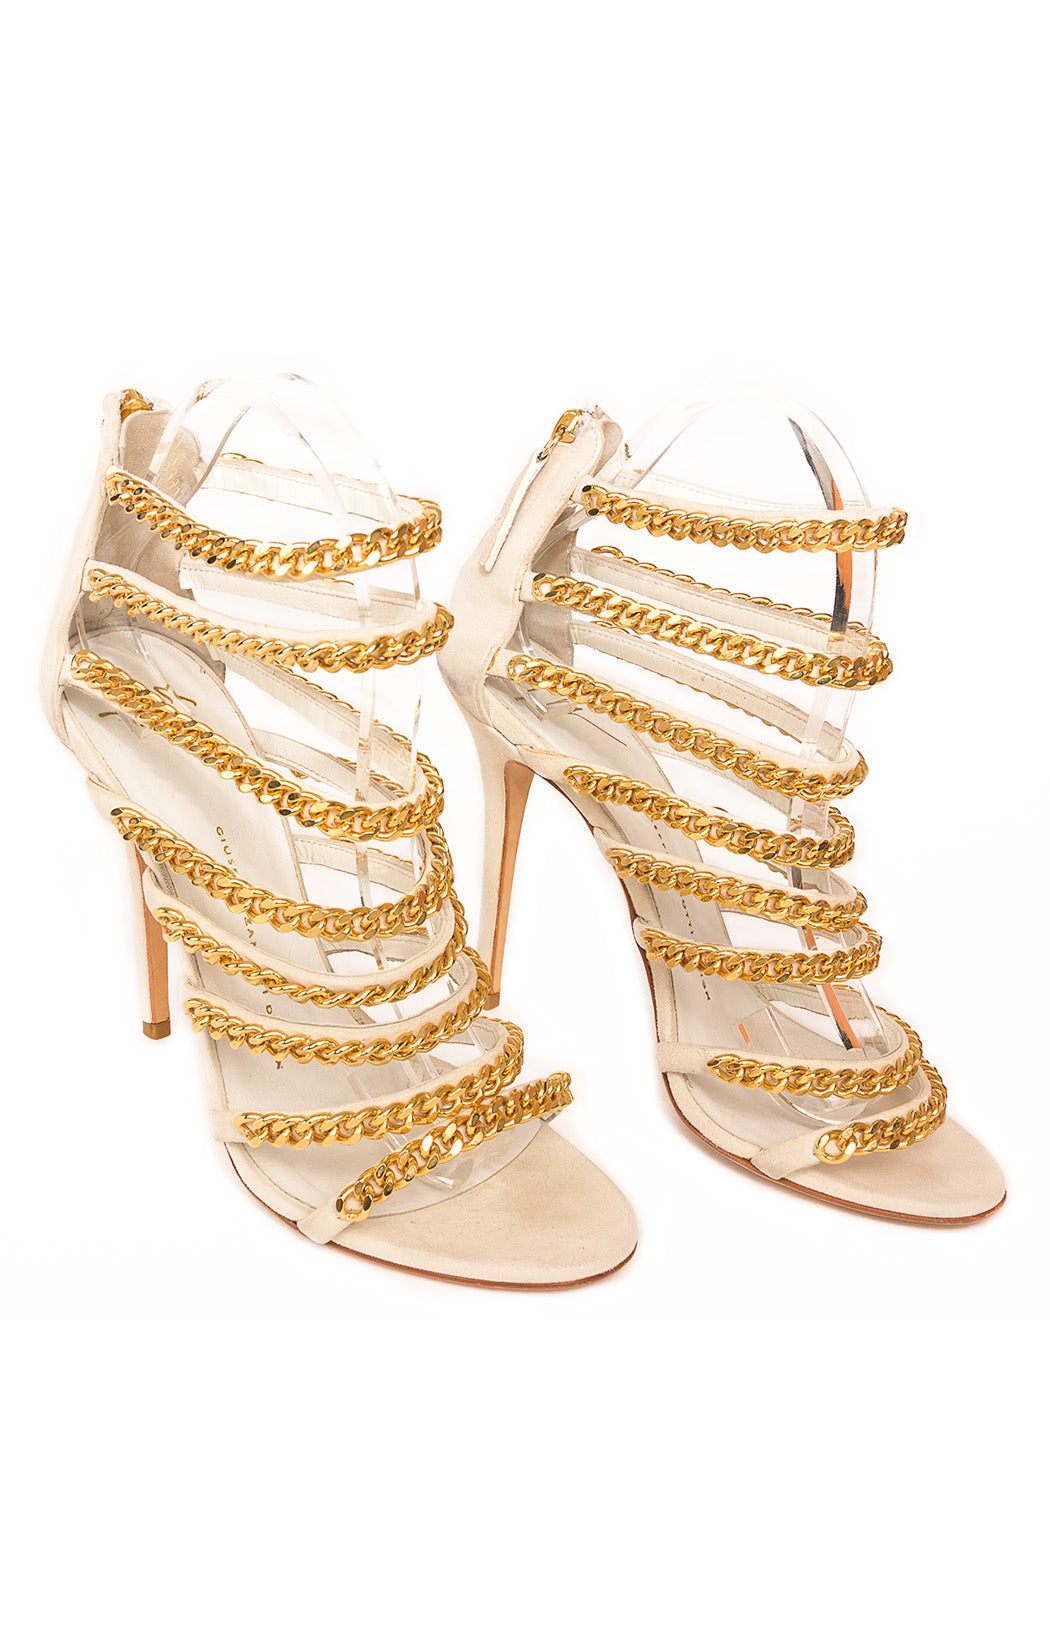 Front view of GIUSEPPE ZANOTTI  Sandals Size: 39 / 9